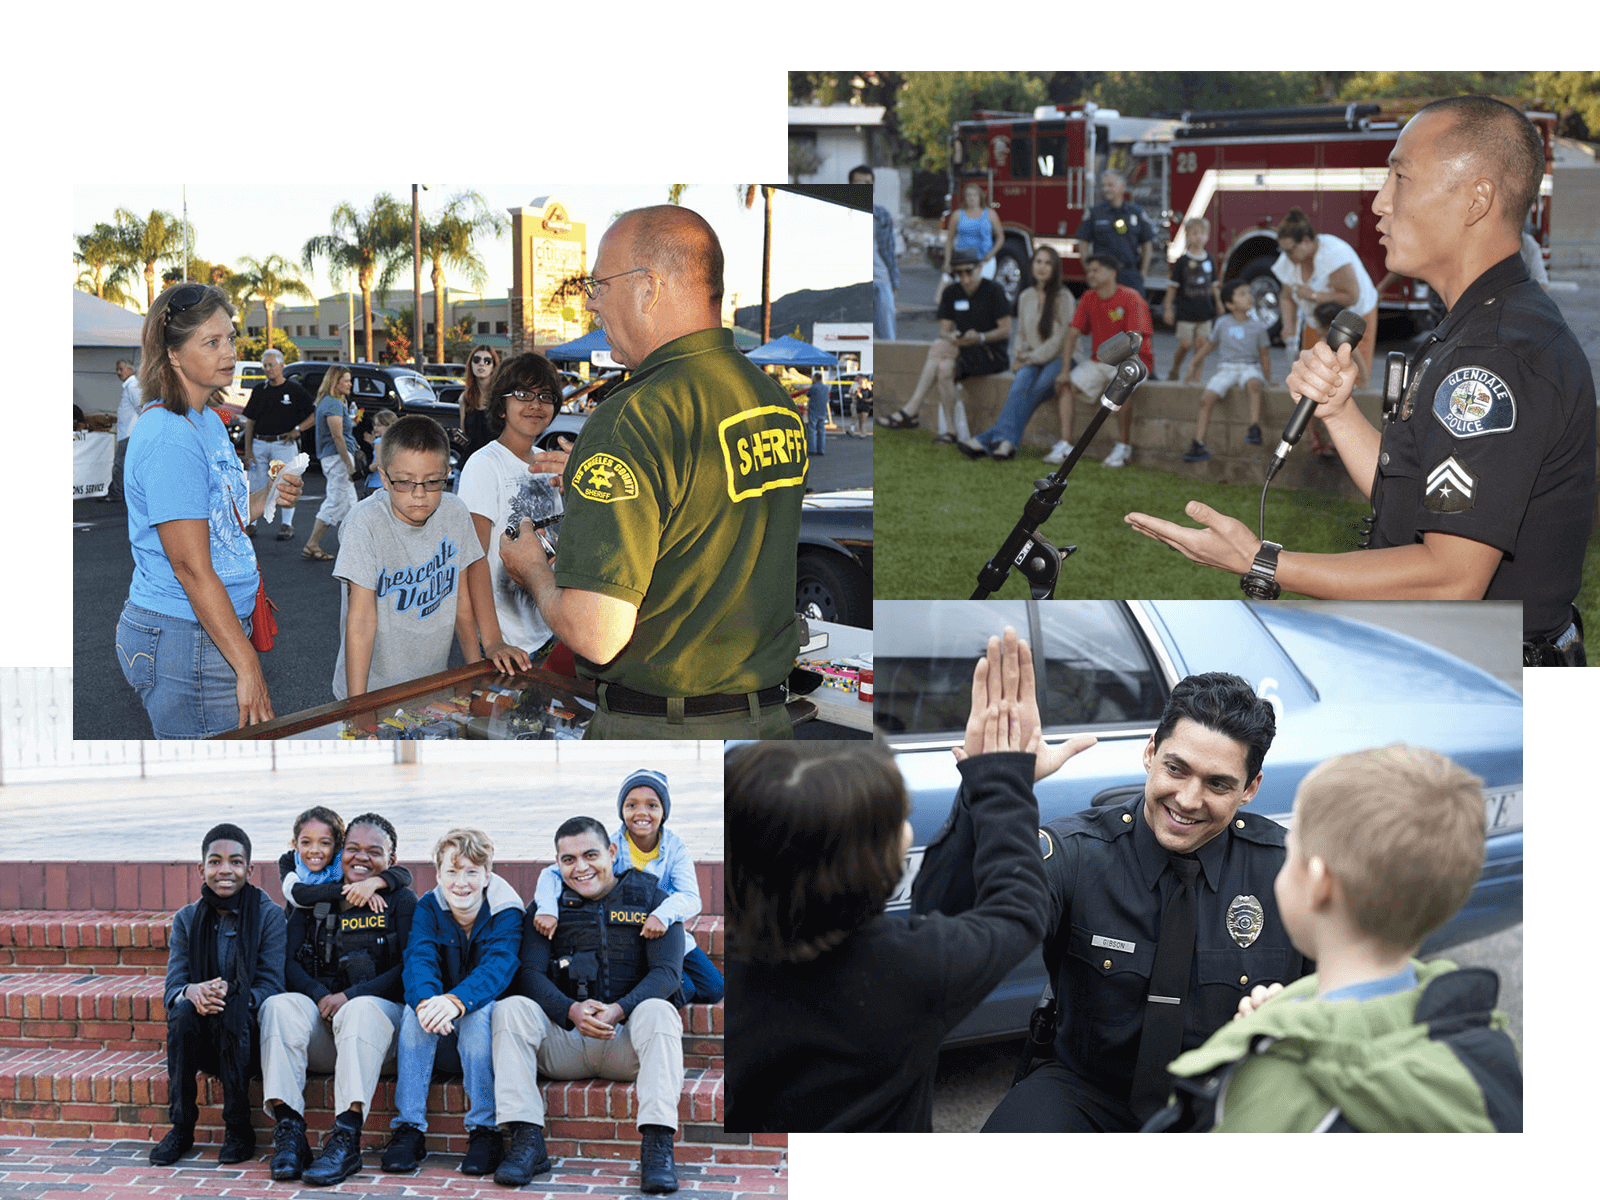 community policing events